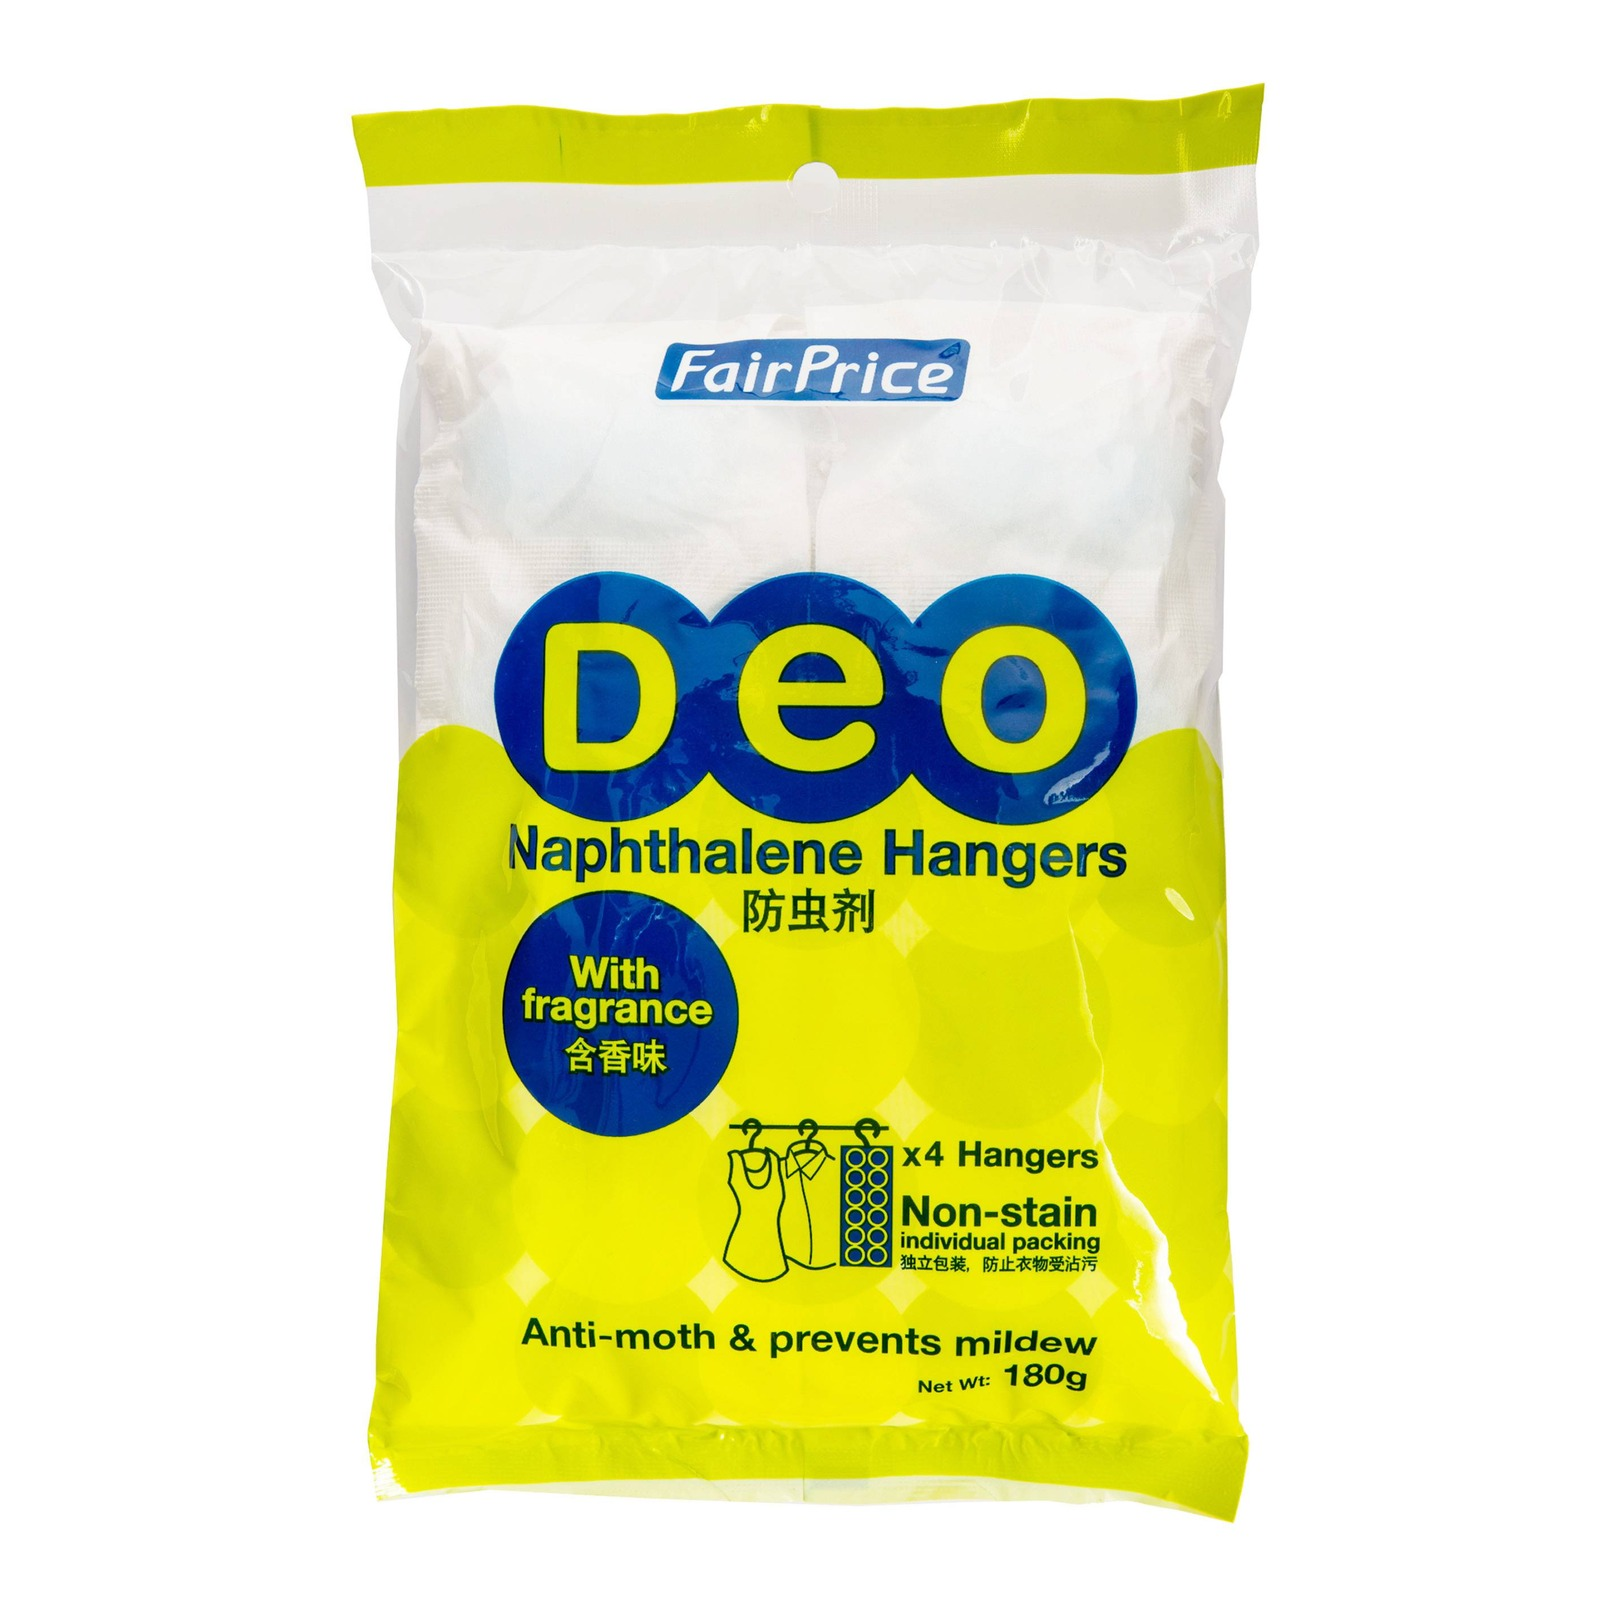 FairPrice Deo Naphthalene Hangers - Fragrance